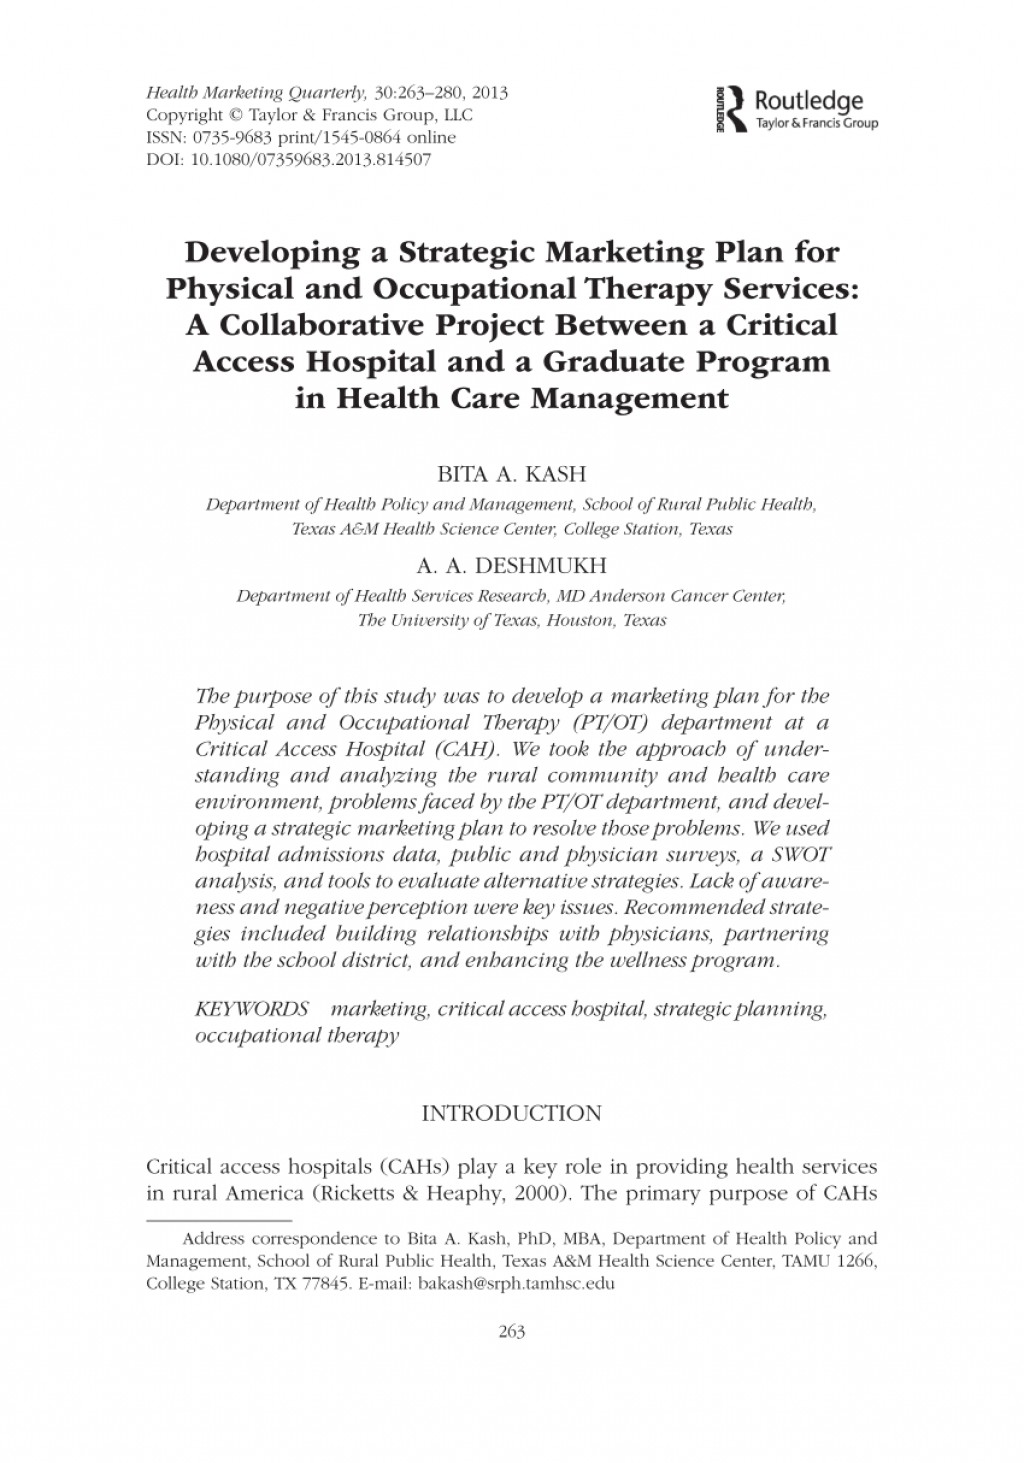 024 Cancer Research Paper Example Marketing Plan Mba Image Hd Largepreview For Excellent Blood Papers Sponsor Form Large